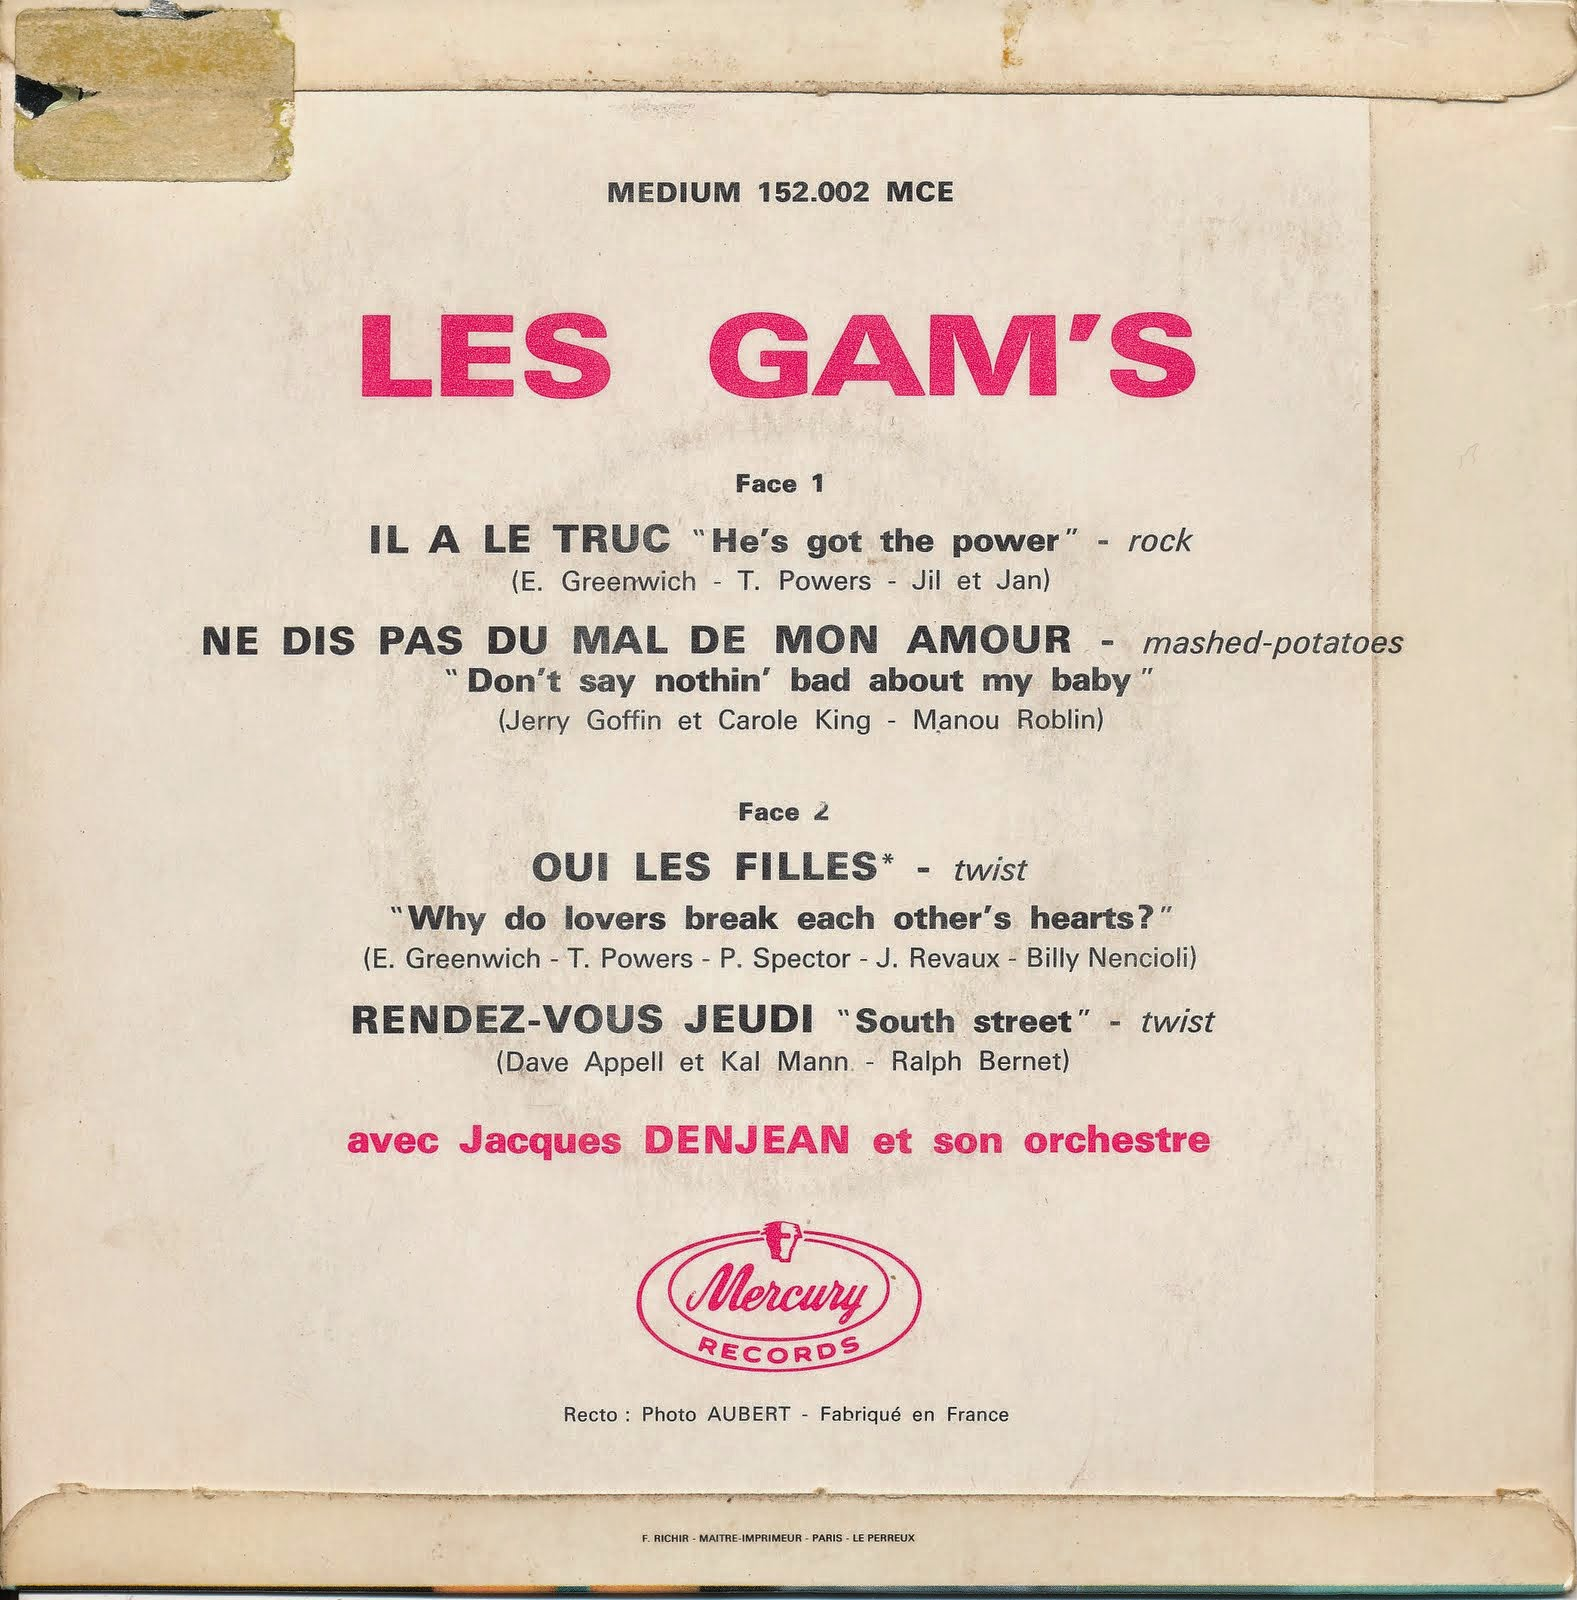 Les Gam's - EP Collection